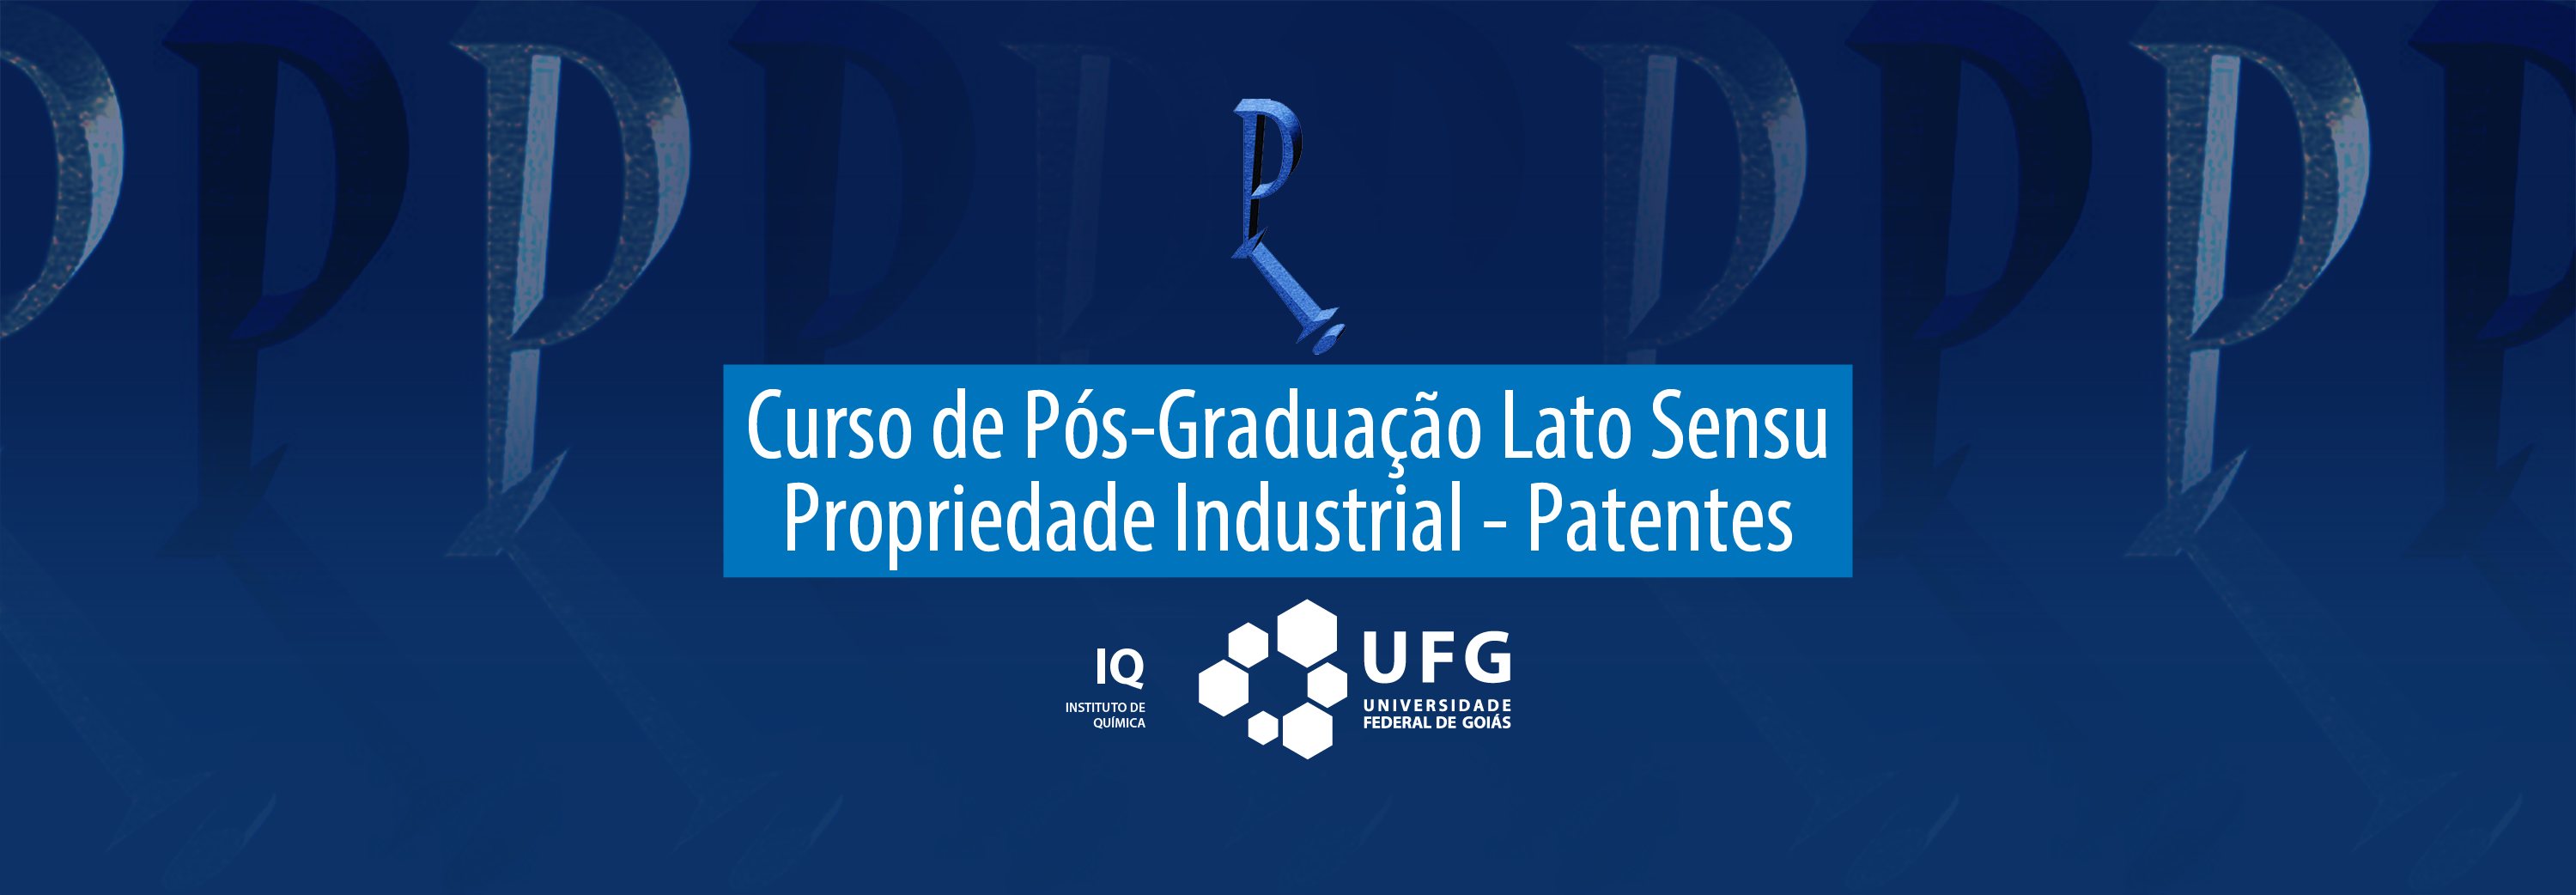 Propriedade_Industrial_IQ_UFG.png